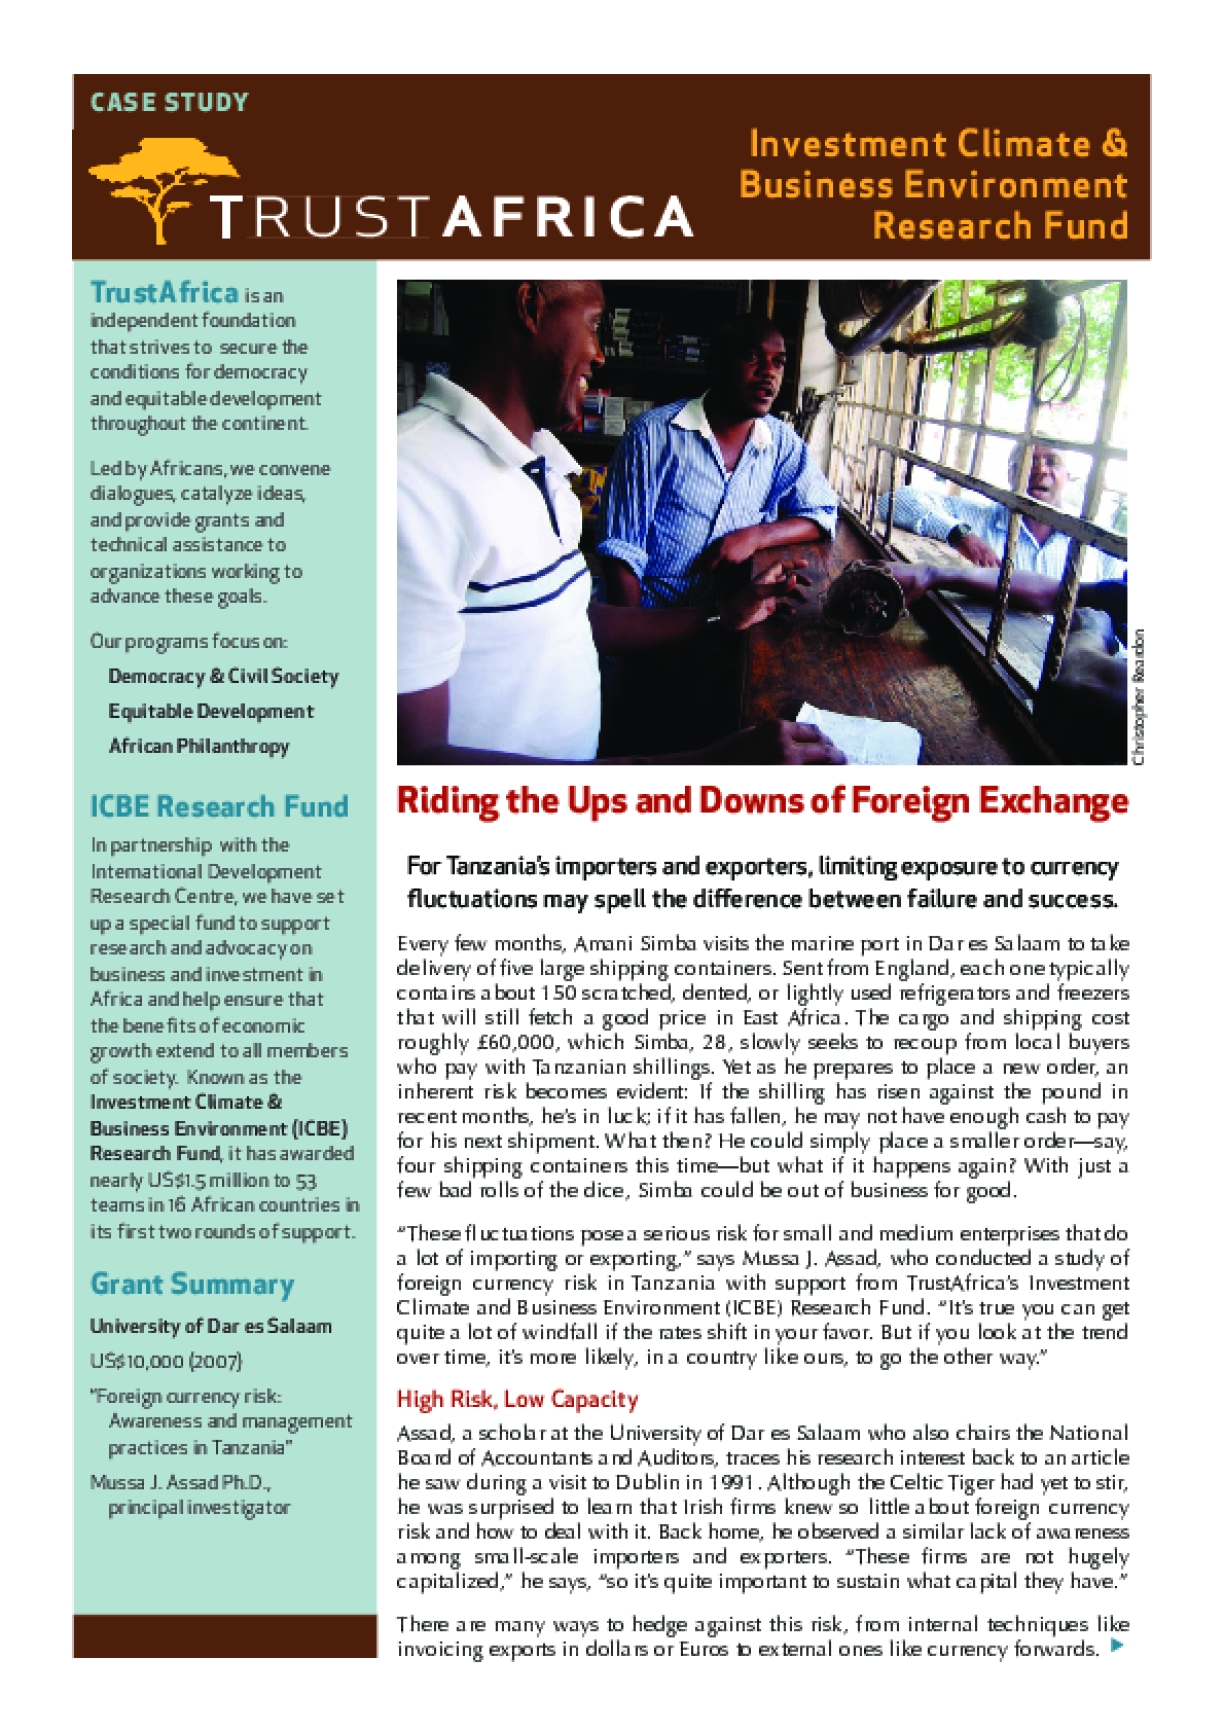 Riding the Ups and Downs of Foreign Exchange